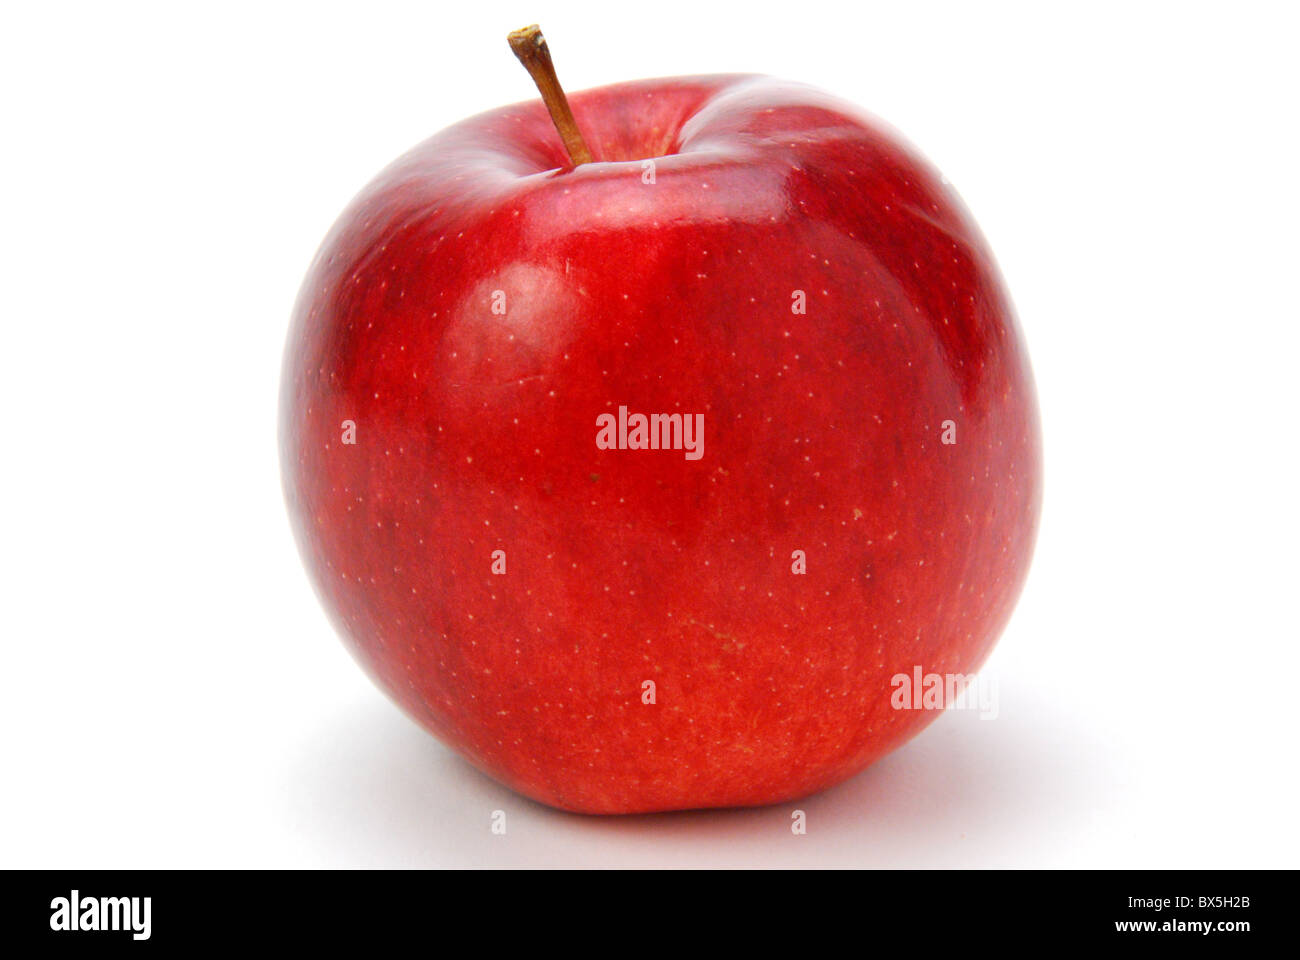 Unico RED APPLE Immagini Stock